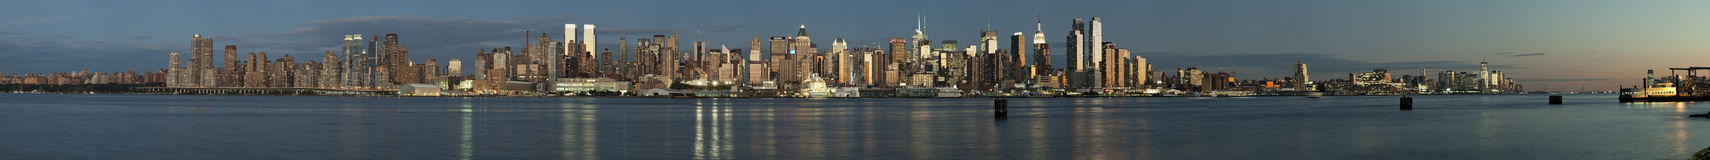 New York City, USA - Panorama from Uptown to Downtown Stock Image